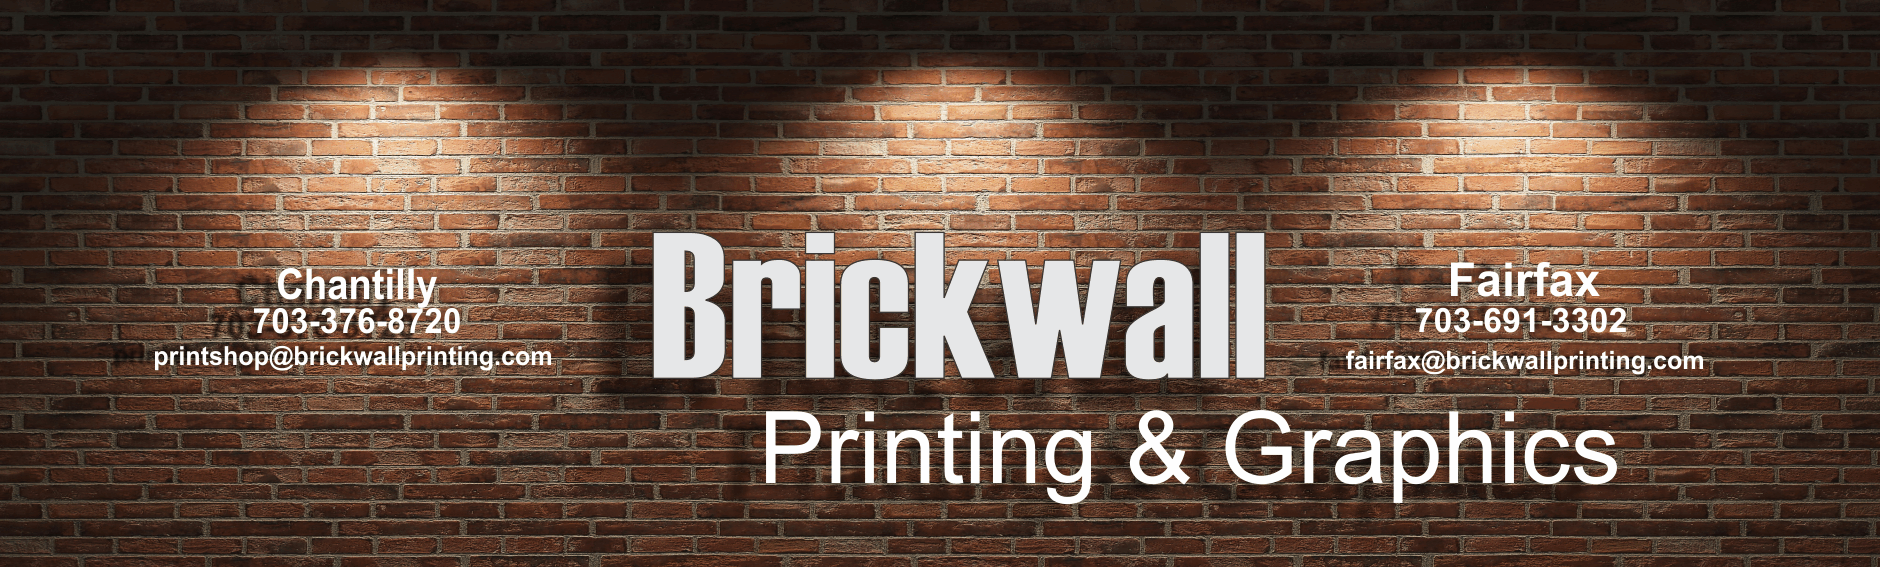 Bricikwall Printing & Graphics